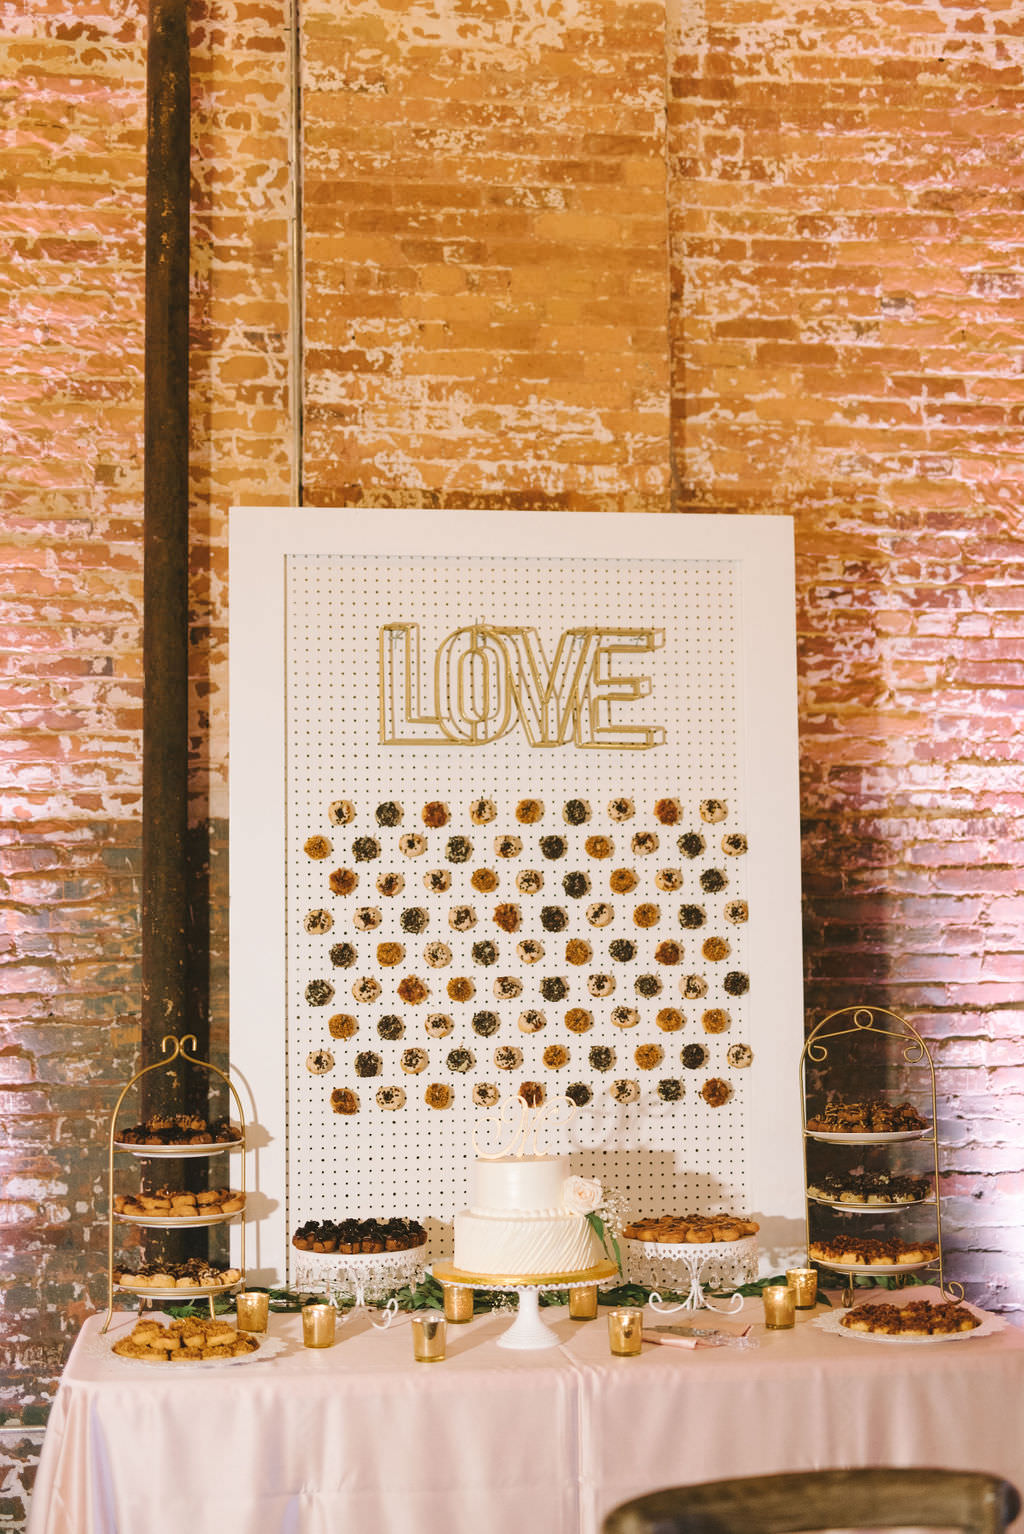 Fun Wedding Dessert Table with Blush Pink Linen, White Display Board with Mini Donut Wall, Gold Love Sign, Two Tier White Wedding Cake   Photographer Kera Photography   Tampa Industrial Wedding Venue Armature Works   Planner Kelly Kennedy Weddings and Events